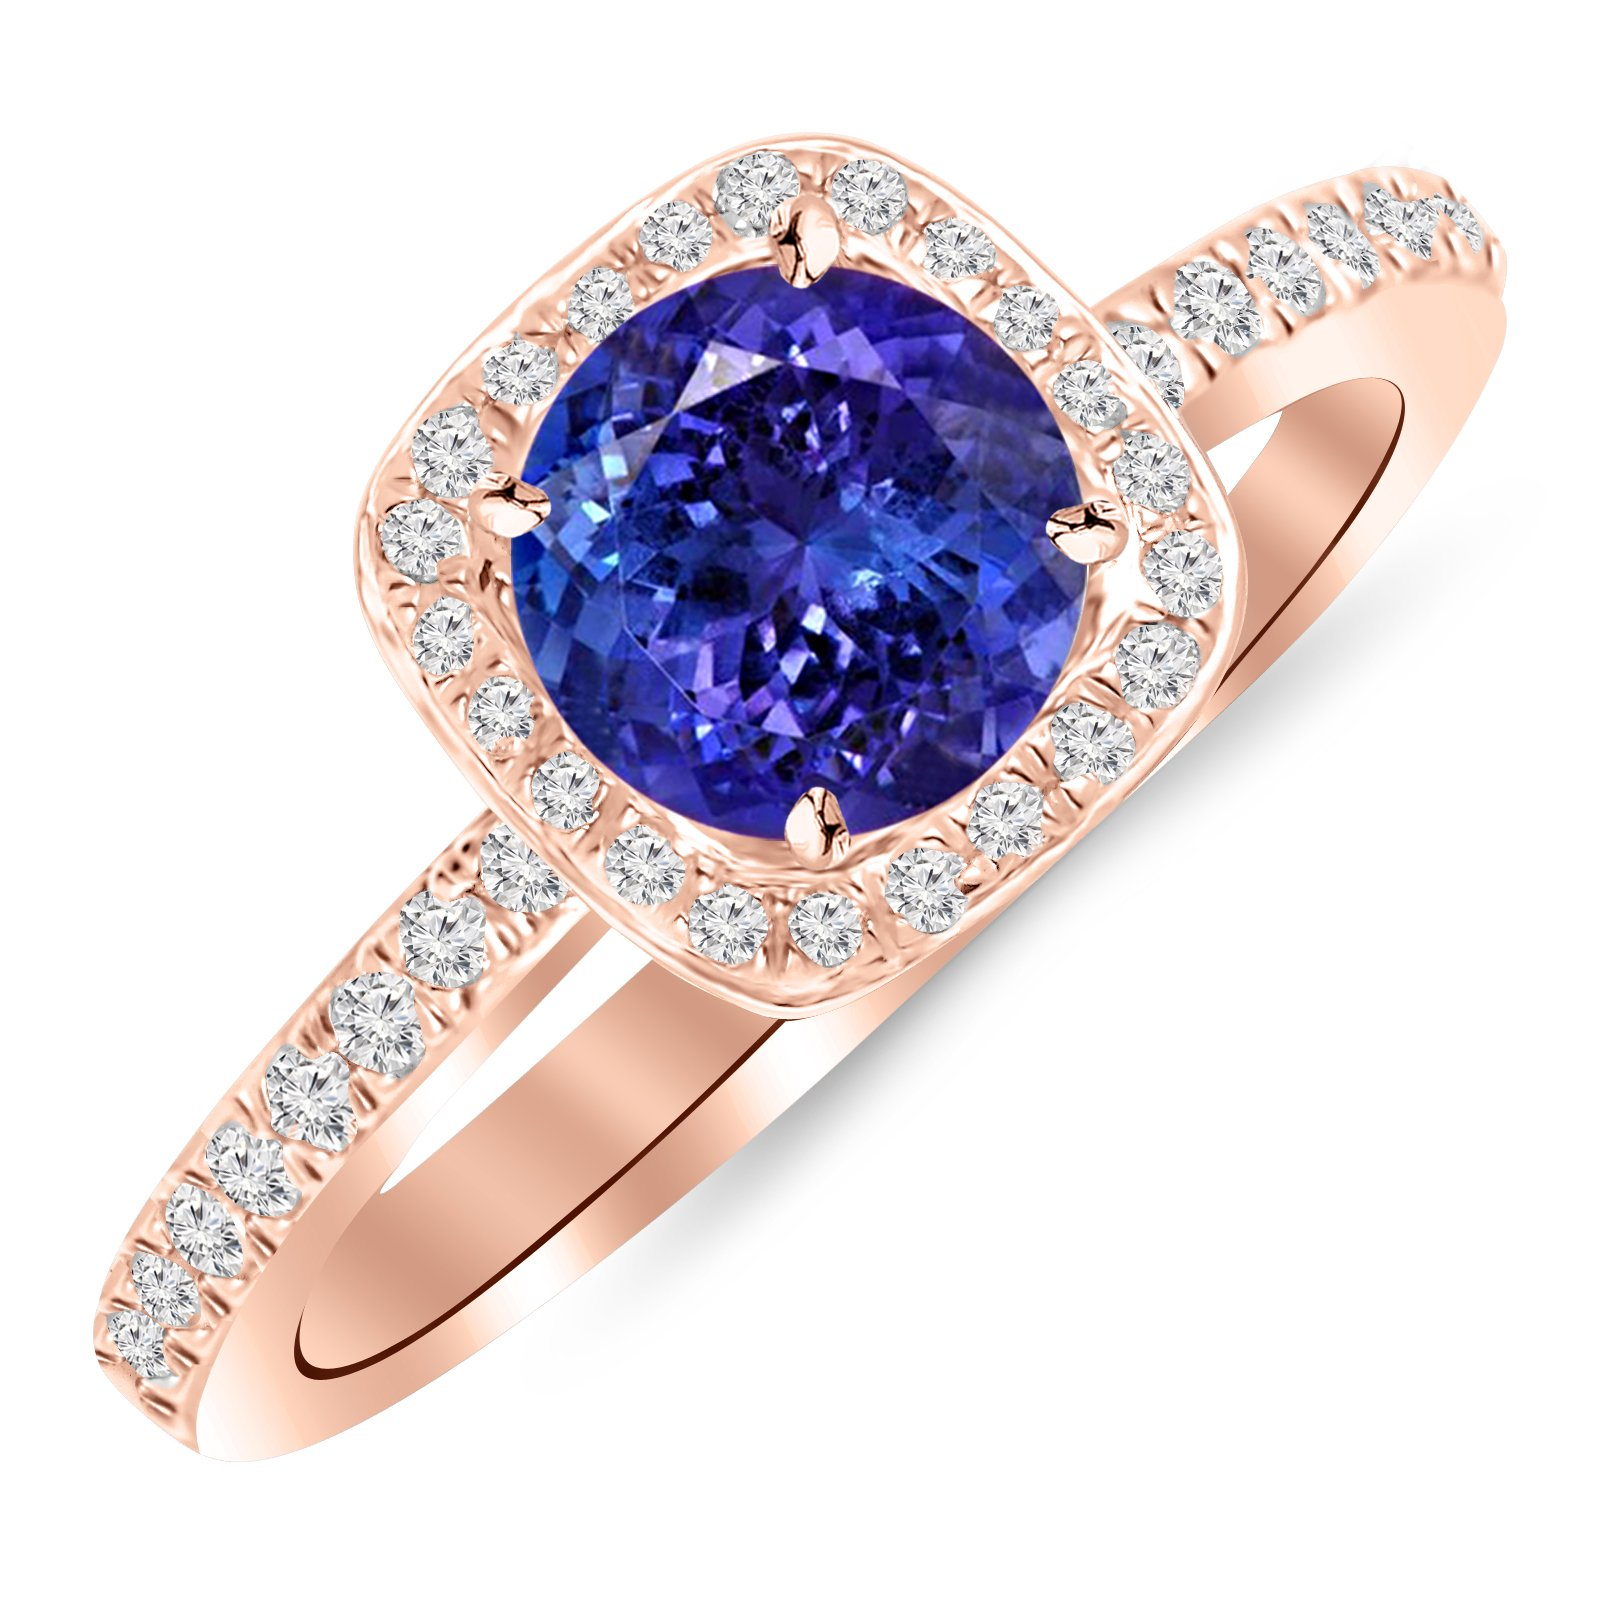 14K Rose Gold Classic Halo Style Cushion Shape Diamond Engagement Ring with a 1.5 Carat Tanzanite AAA Heirloom Center Stone by Houston Diamond District